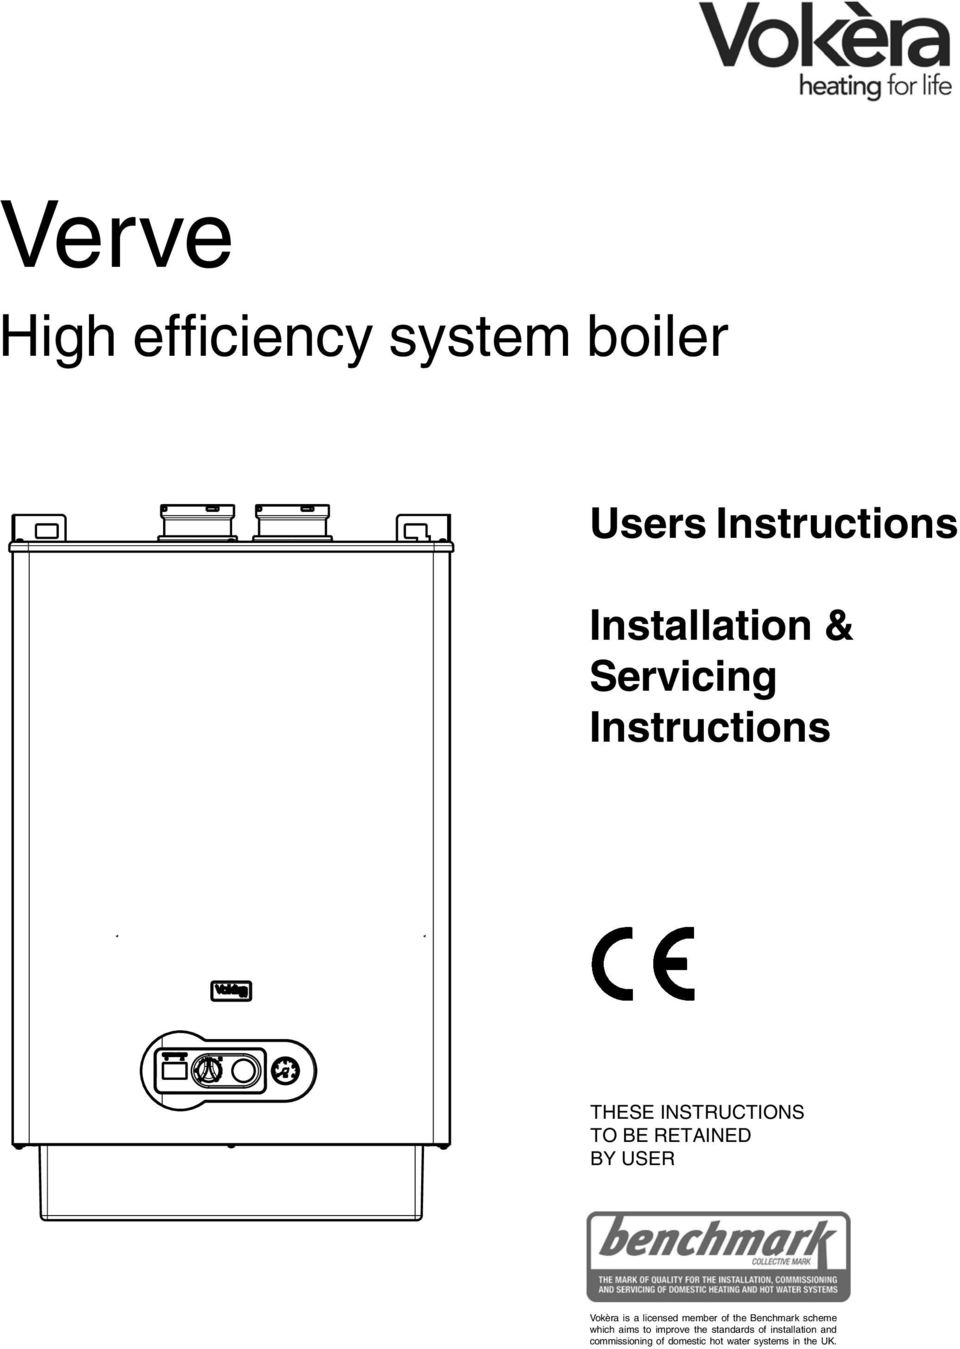 Verve. High efficiency system boiler. Users Instructions ...